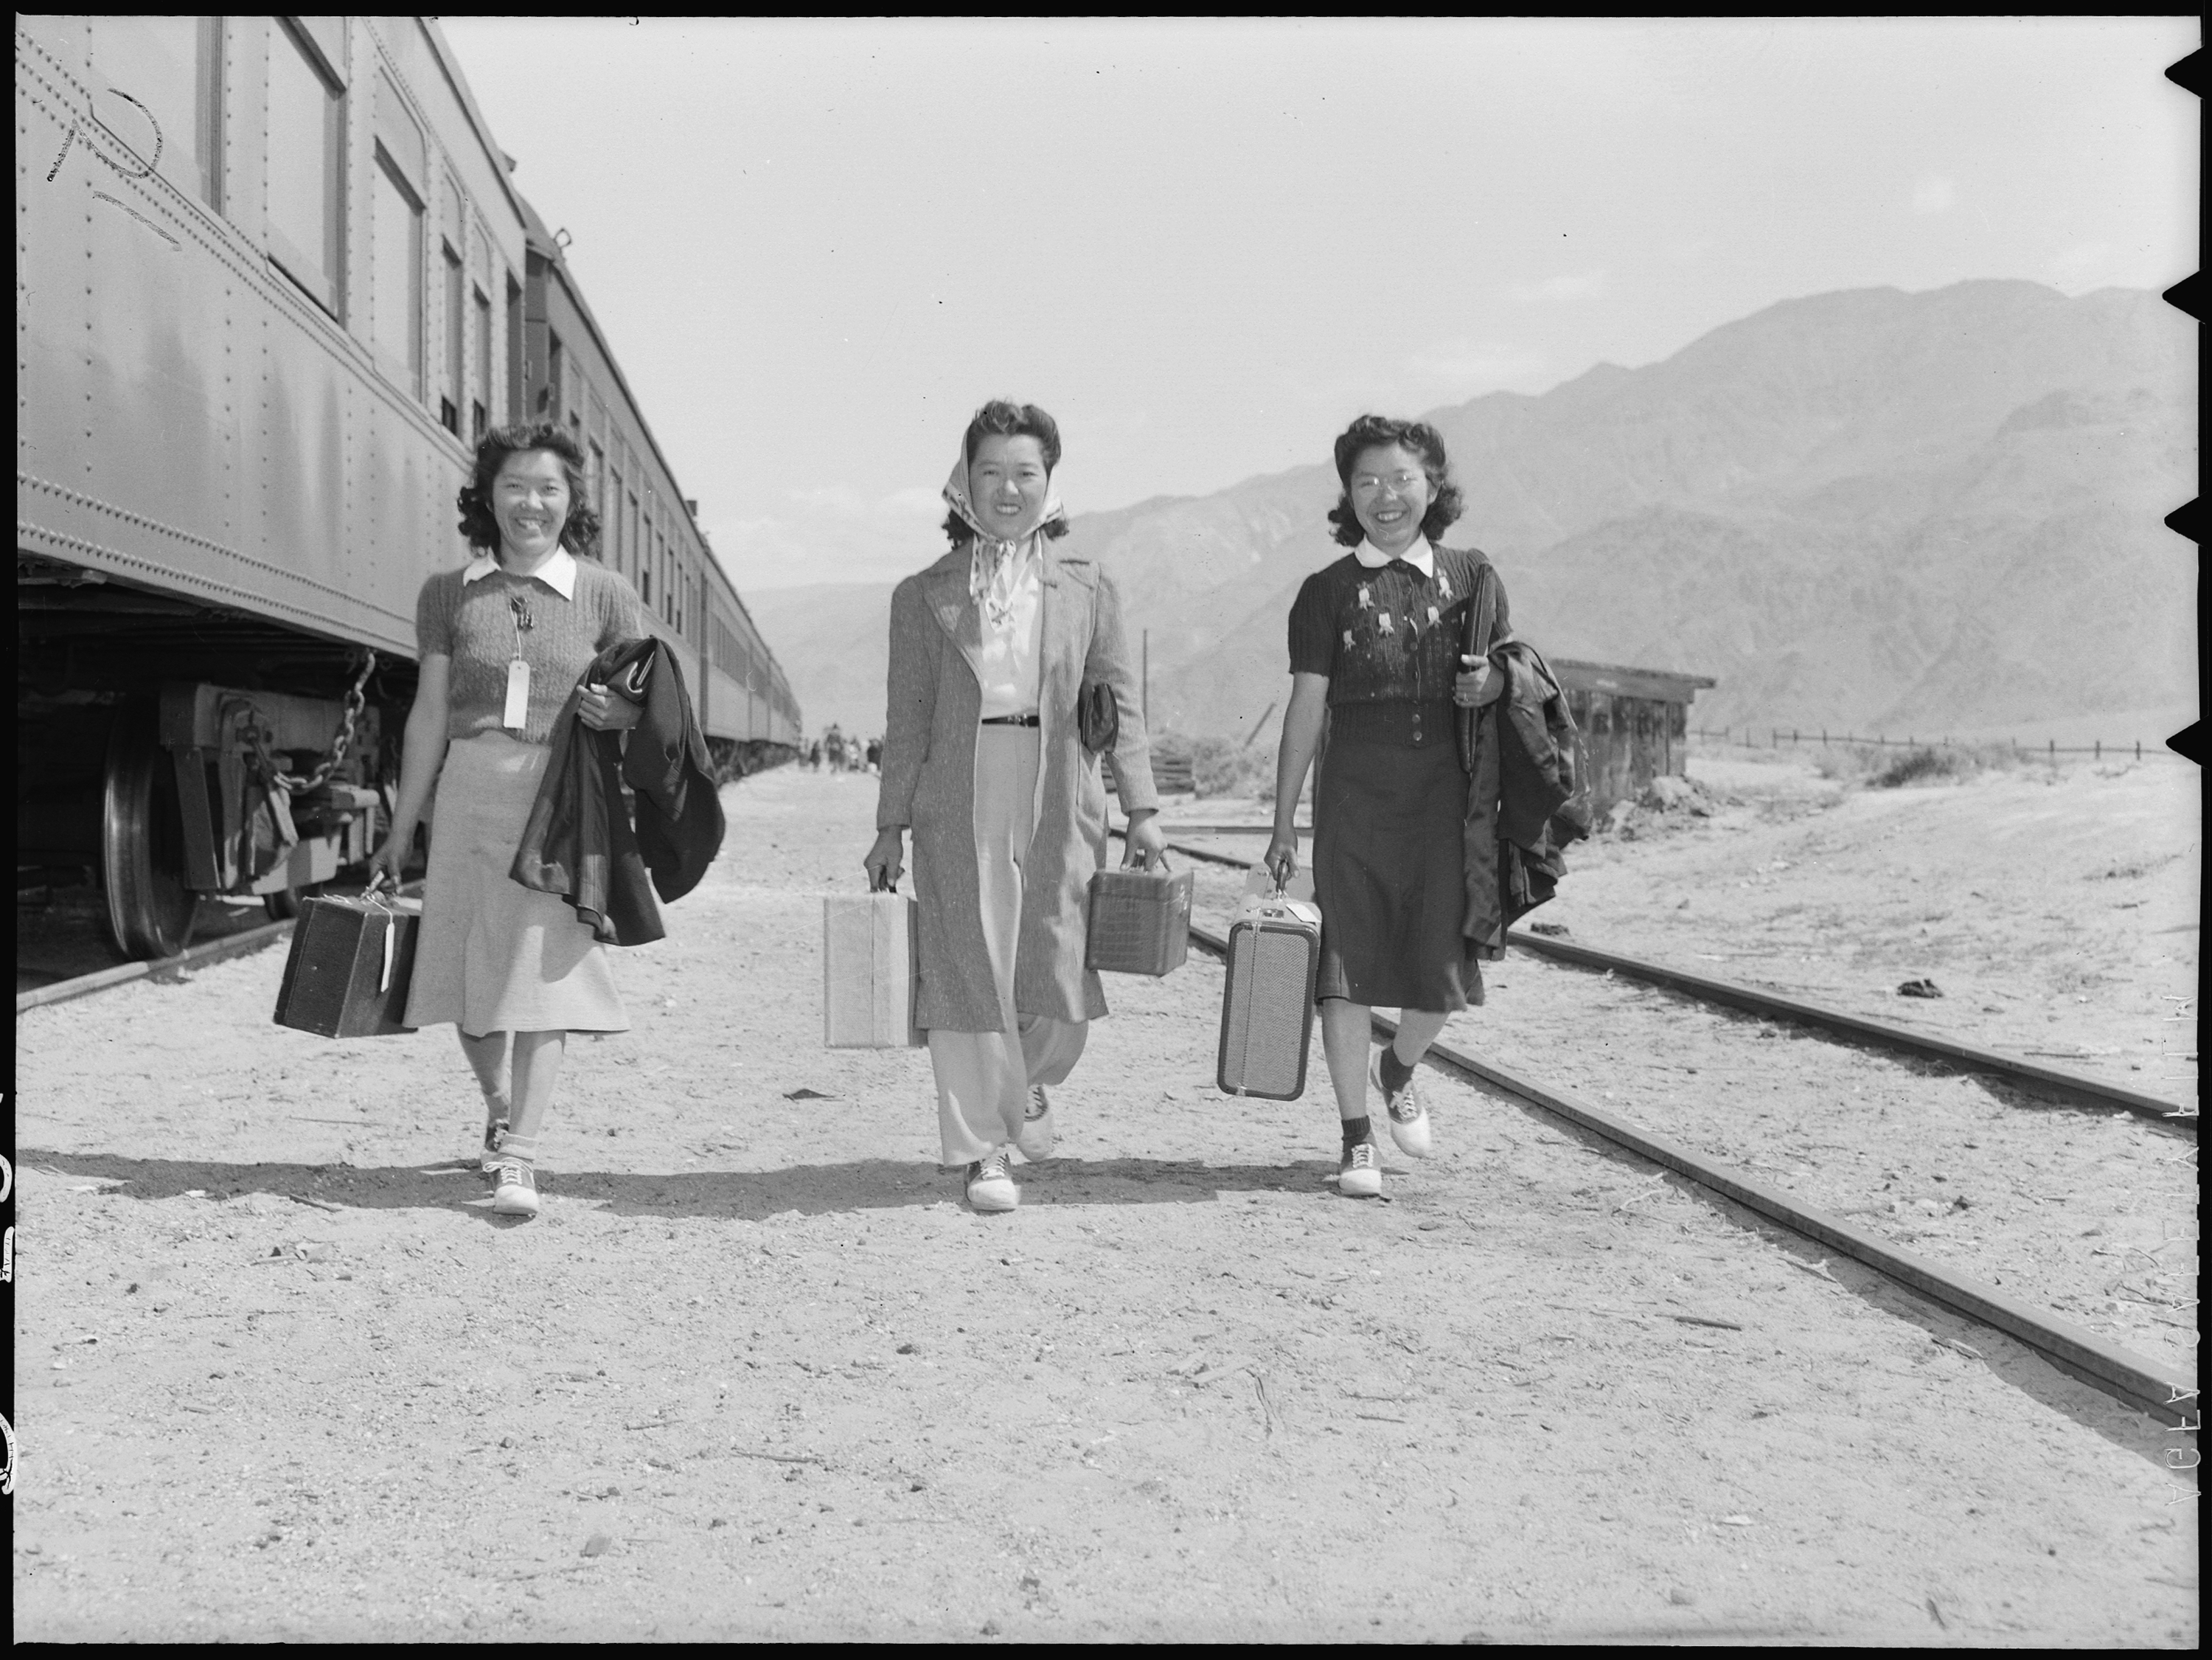 06/30/1946) Title Lone Pine, California. Arriving by train at Lone Pine from Elk Grove, California. Newcomers are tr . . . Scope and content: The